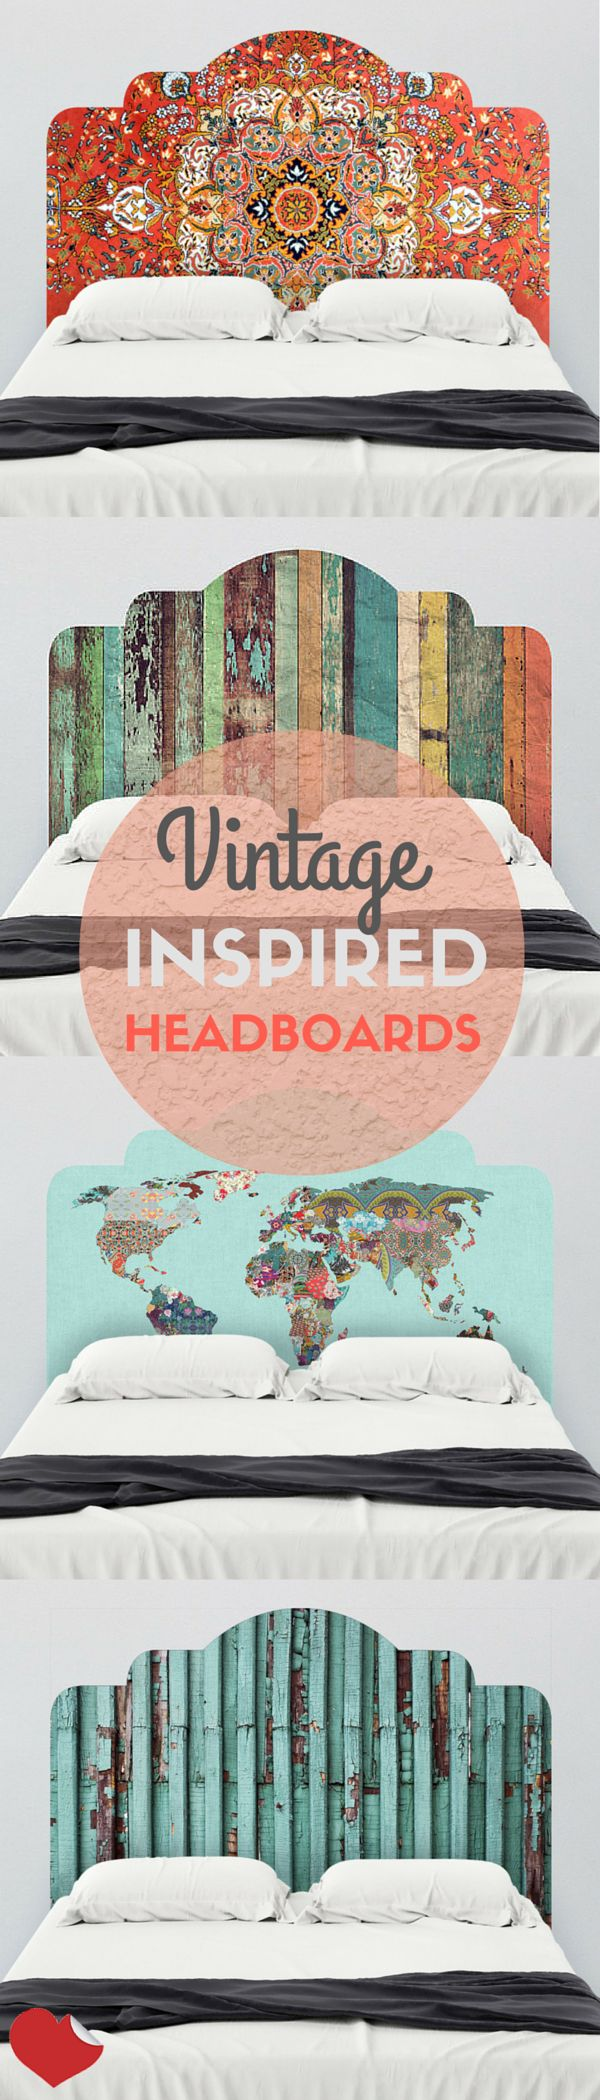 502 Best Dream Home Ideas Images On Pinterest My Glue Buy Super 502circuit Board Silicone Potting Get Inspired By All Things Vintage And Bohemian With These Adhesive Headboard